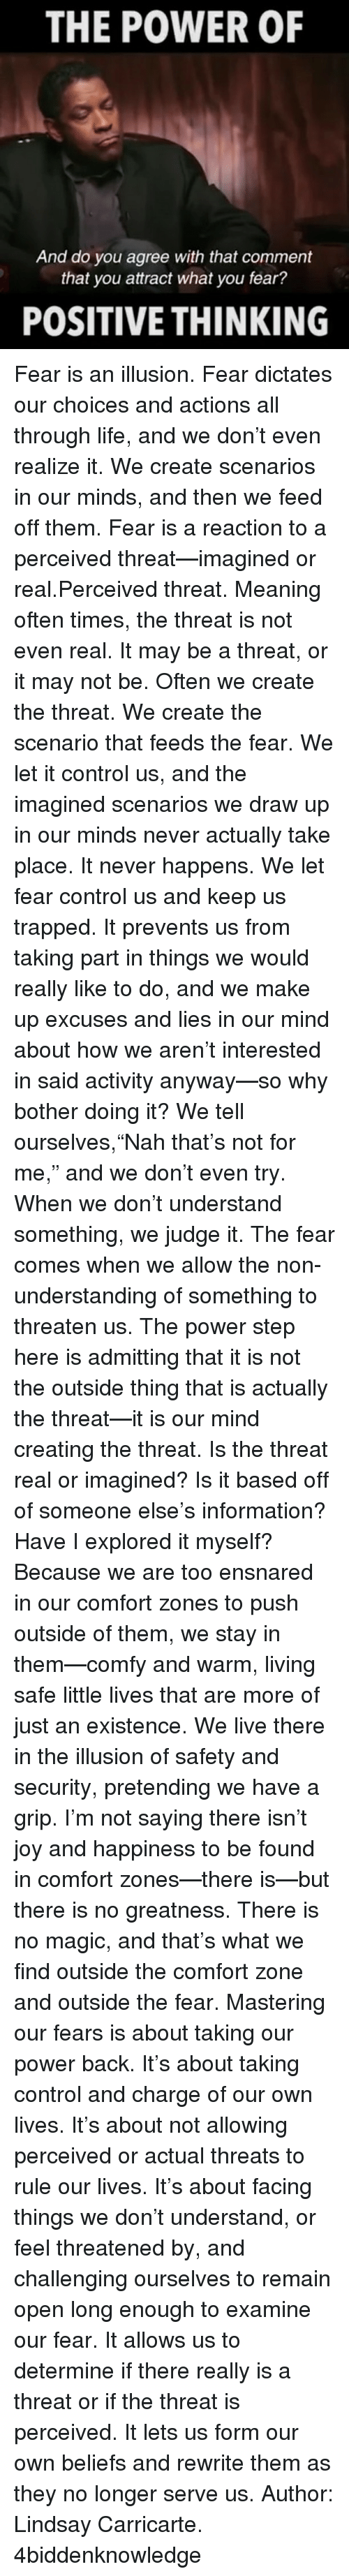 """Botherers: THE POWER OF  And do you agree with that comment  that you attract what you fear?  POSITIVE THINKING Fear is an illusion. Fear dictates our choices and actions all through life, and we don't even realize it. We create scenarios in our minds, and then we feed off them. Fear is a reaction to a perceived threat—imagined or real.Perceived threat. Meaning often times, the threat is not even real. It may be a threat, or it may not be. Often we create the threat. We create the scenario that feeds the fear. We let it control us, and the imagined scenarios we draw up in our minds never actually take place. It never happens. We let fear control us and keep us trapped. It prevents us from taking part in things we would really like to do, and we make up excuses and lies in our mind about how we aren't interested in said activity anyway—so why bother doing it? We tell ourselves,""""Nah that's not for me,"""" and we don't even try. When we don't understand something, we judge it. The fear comes when we allow the non-understanding of something to threaten us. The power step here is admitting that it is not the outside thing that is actually the threat—it is our mind creating the threat. Is the threat real or imagined? Is it based off of someone else's information? Have I explored it myself? Because we are too ensnared in our comfort zones to push outside of them, we stay in them—comfy and warm, living safe little lives that are more of just an existence. We live there in the illusion of safety and security, pretending we have a grip. I'm not saying there isn't joy and happiness to be found in comfort zones—there is—but there is no greatness. There is no magic, and that's what we find outside the comfort zone and outside the fear. Mastering our fears is about taking our power back. It's about taking control and charge of our own lives. It's about not allowing perceived or actual threats to rule our lives. It's about facing things we don't understand, or feel threatened by, and"""